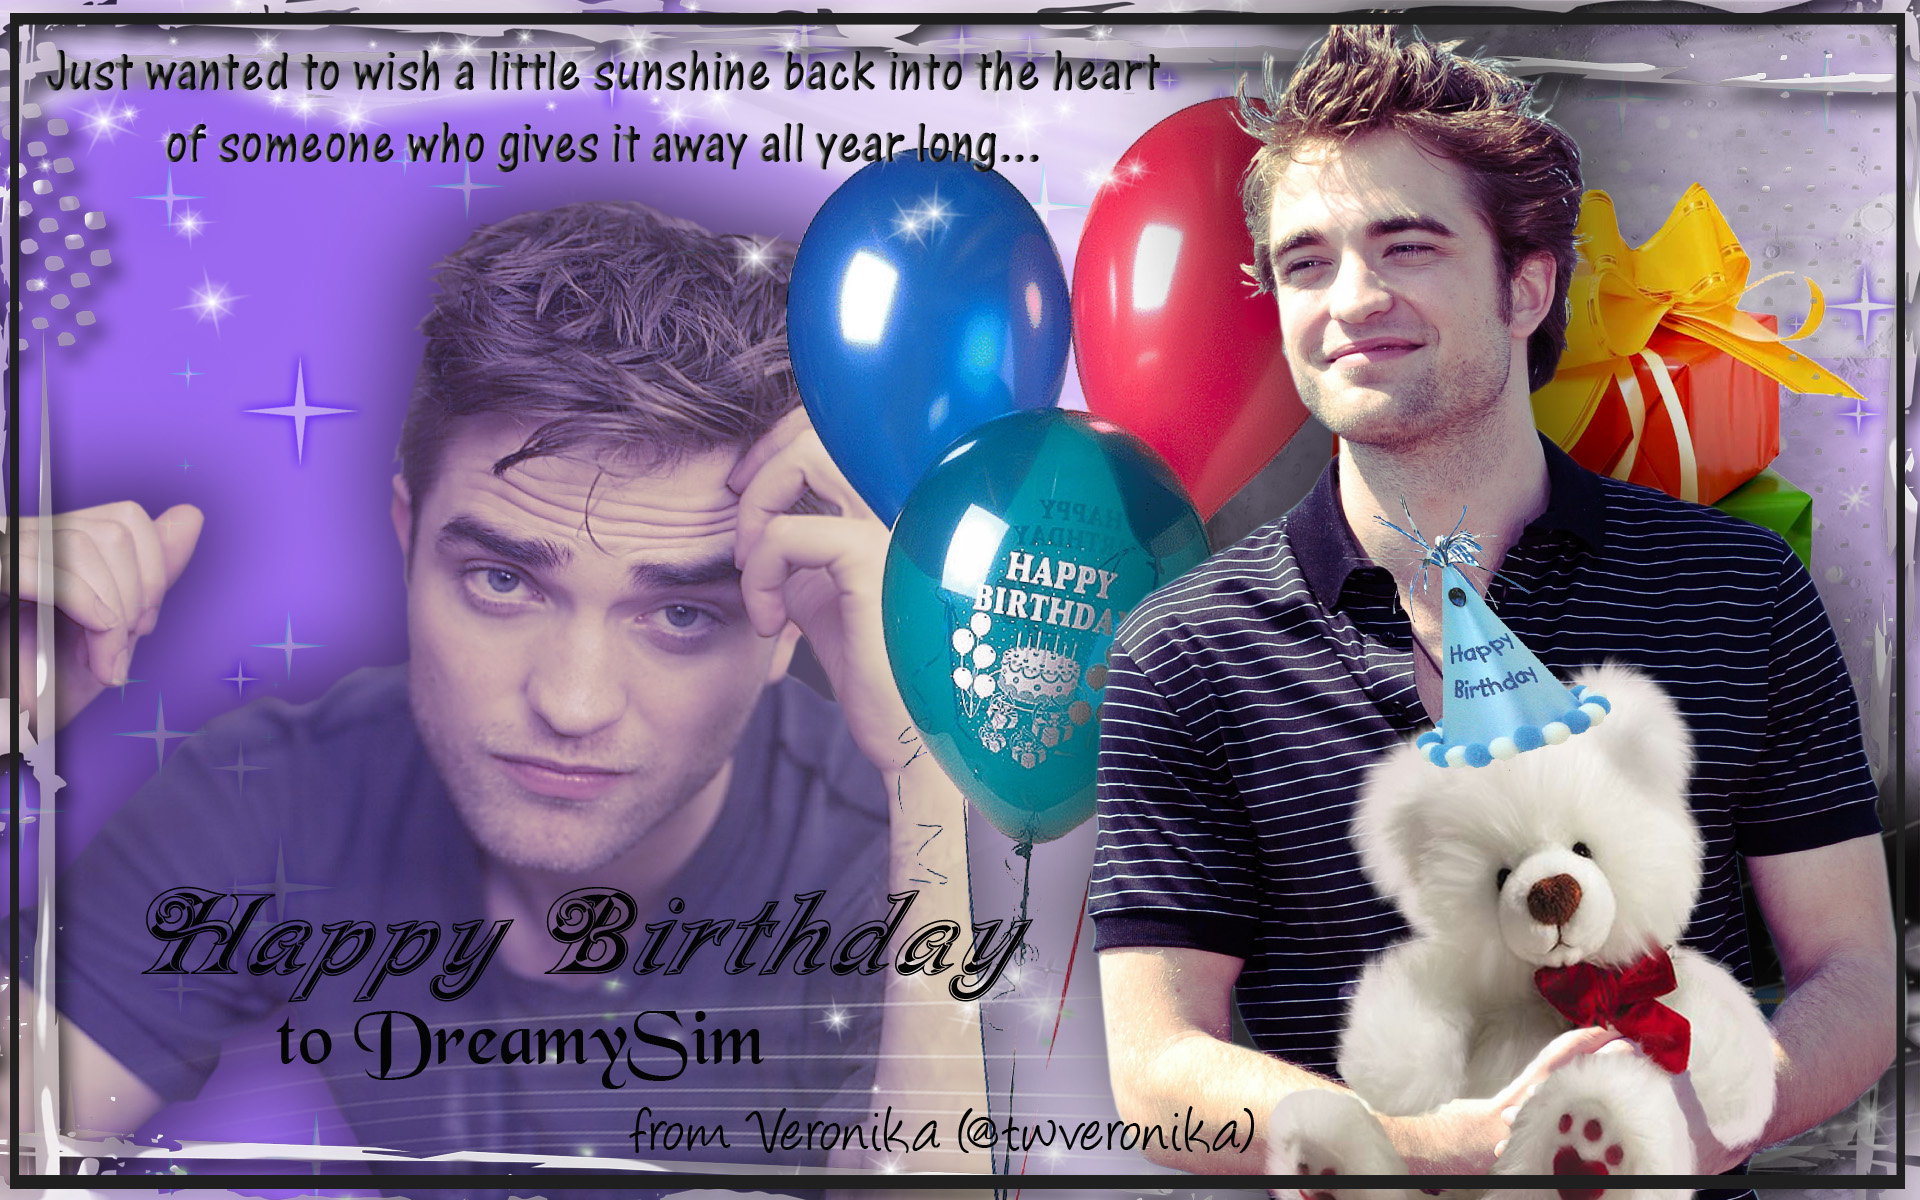 Happy Birthday Images For Men ~ Happy birthday sim! thinking of rob